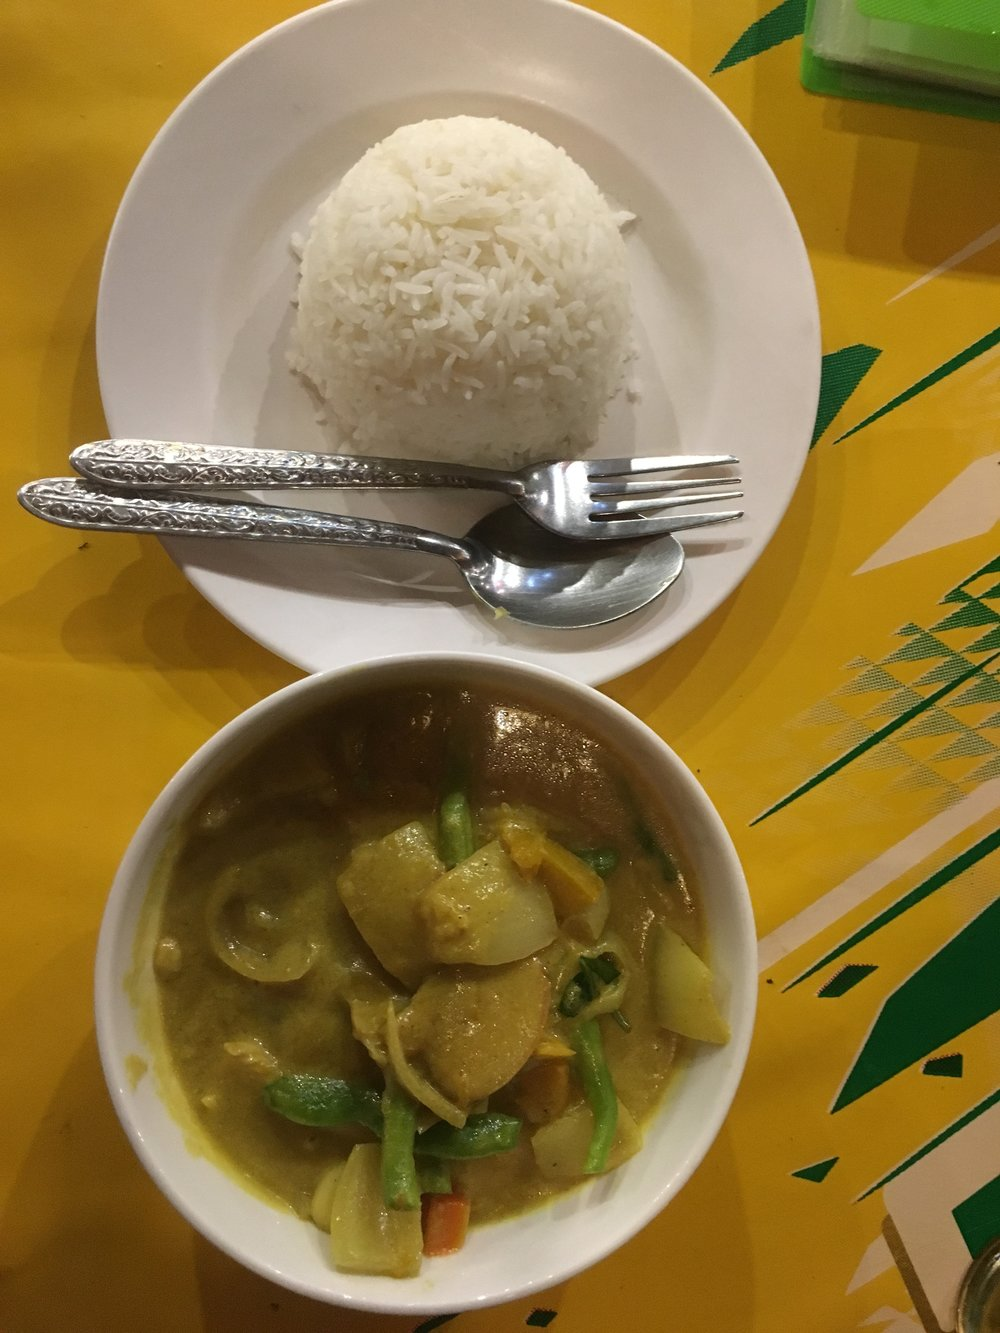 Delicious Massaman curry and steamed rice.